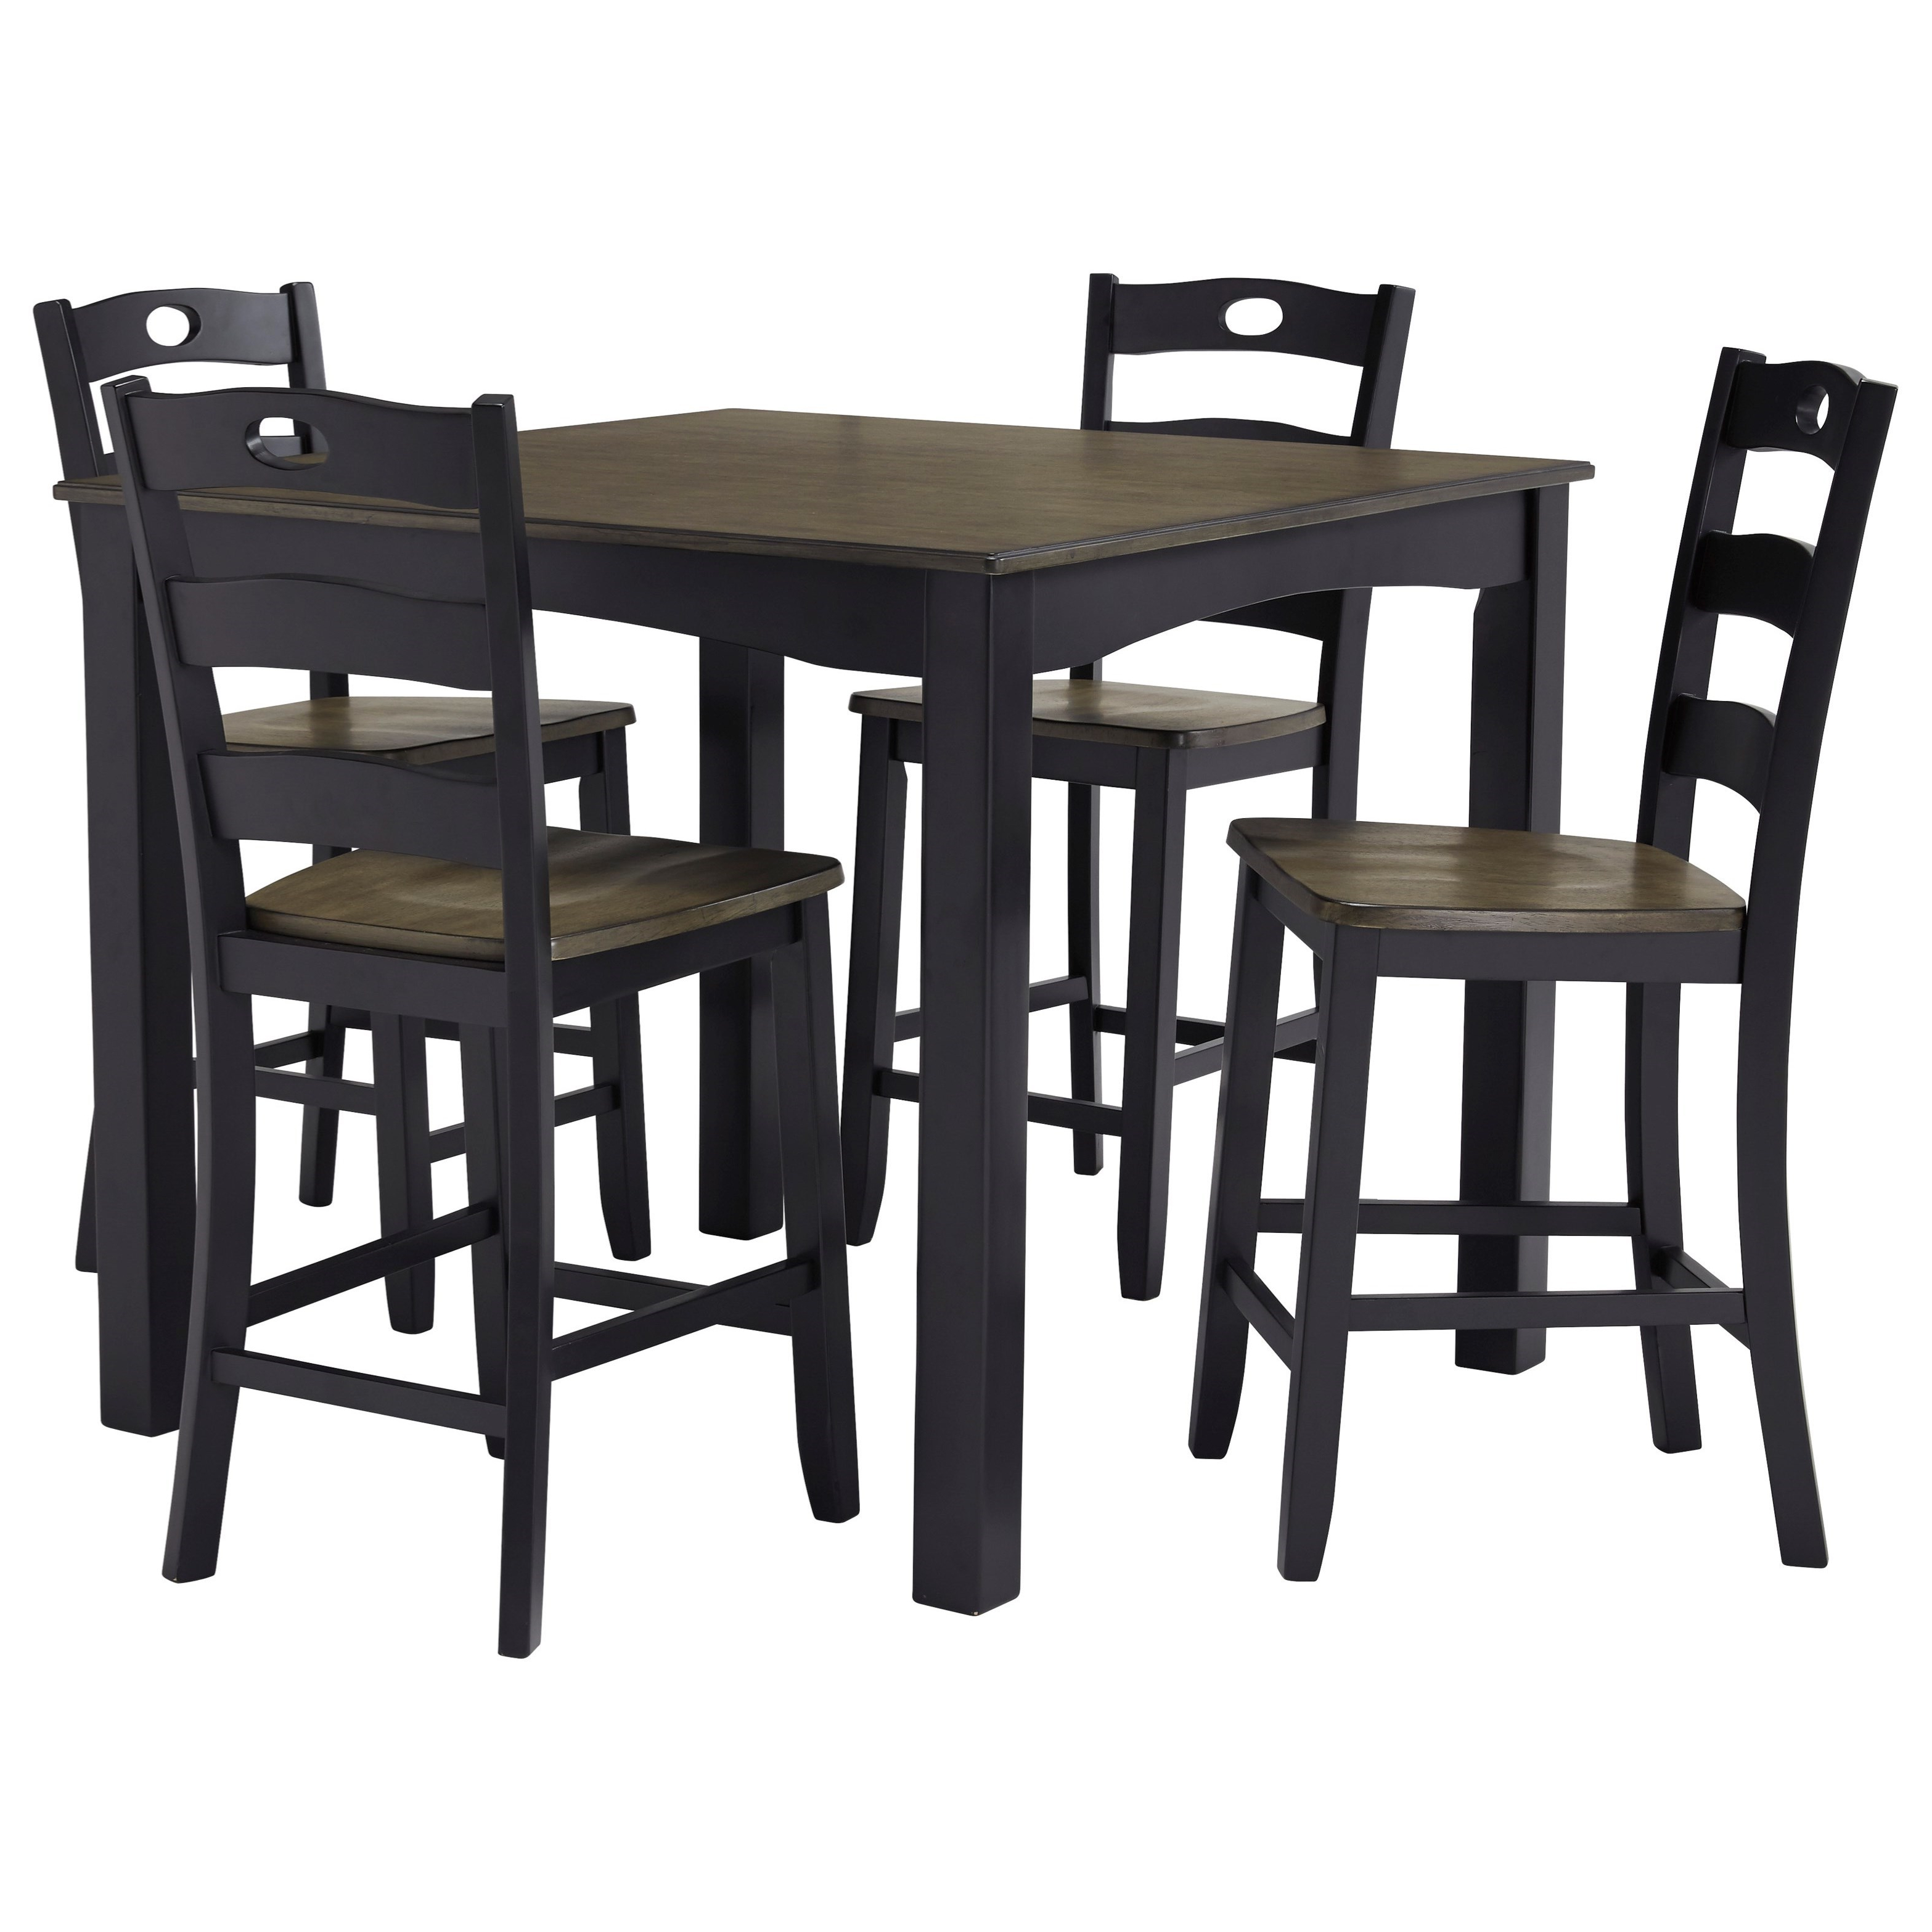 Signature Designashley Froshburg D338 223 Two Tone Finish 5 Throughout Most Recently Released Moorehead 3 Piece Counter Height Dining Sets (View 14 of 25)